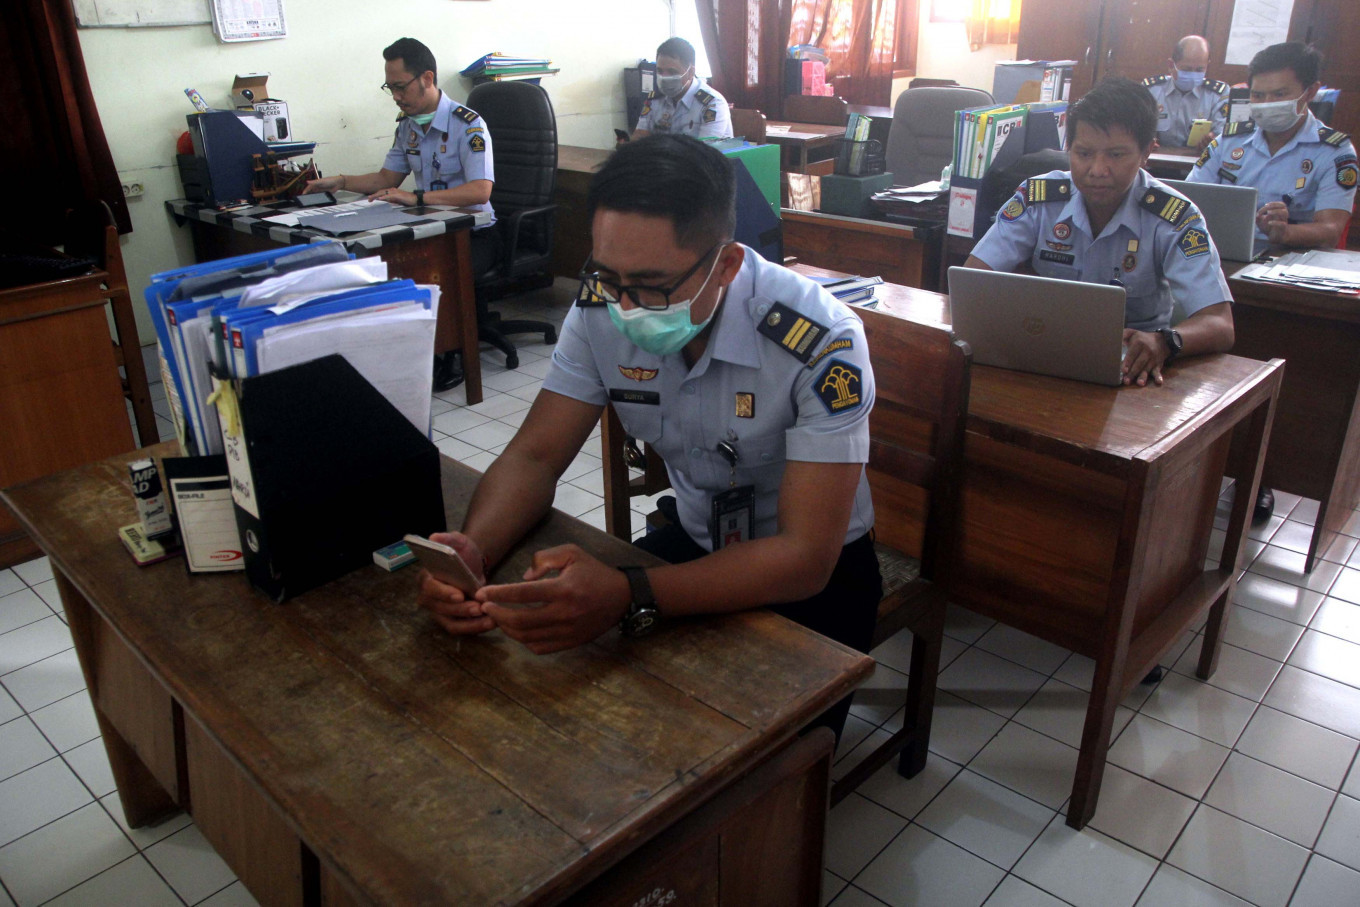 135 early released prisoners have reoffended during pandemic in Indonesia: Police